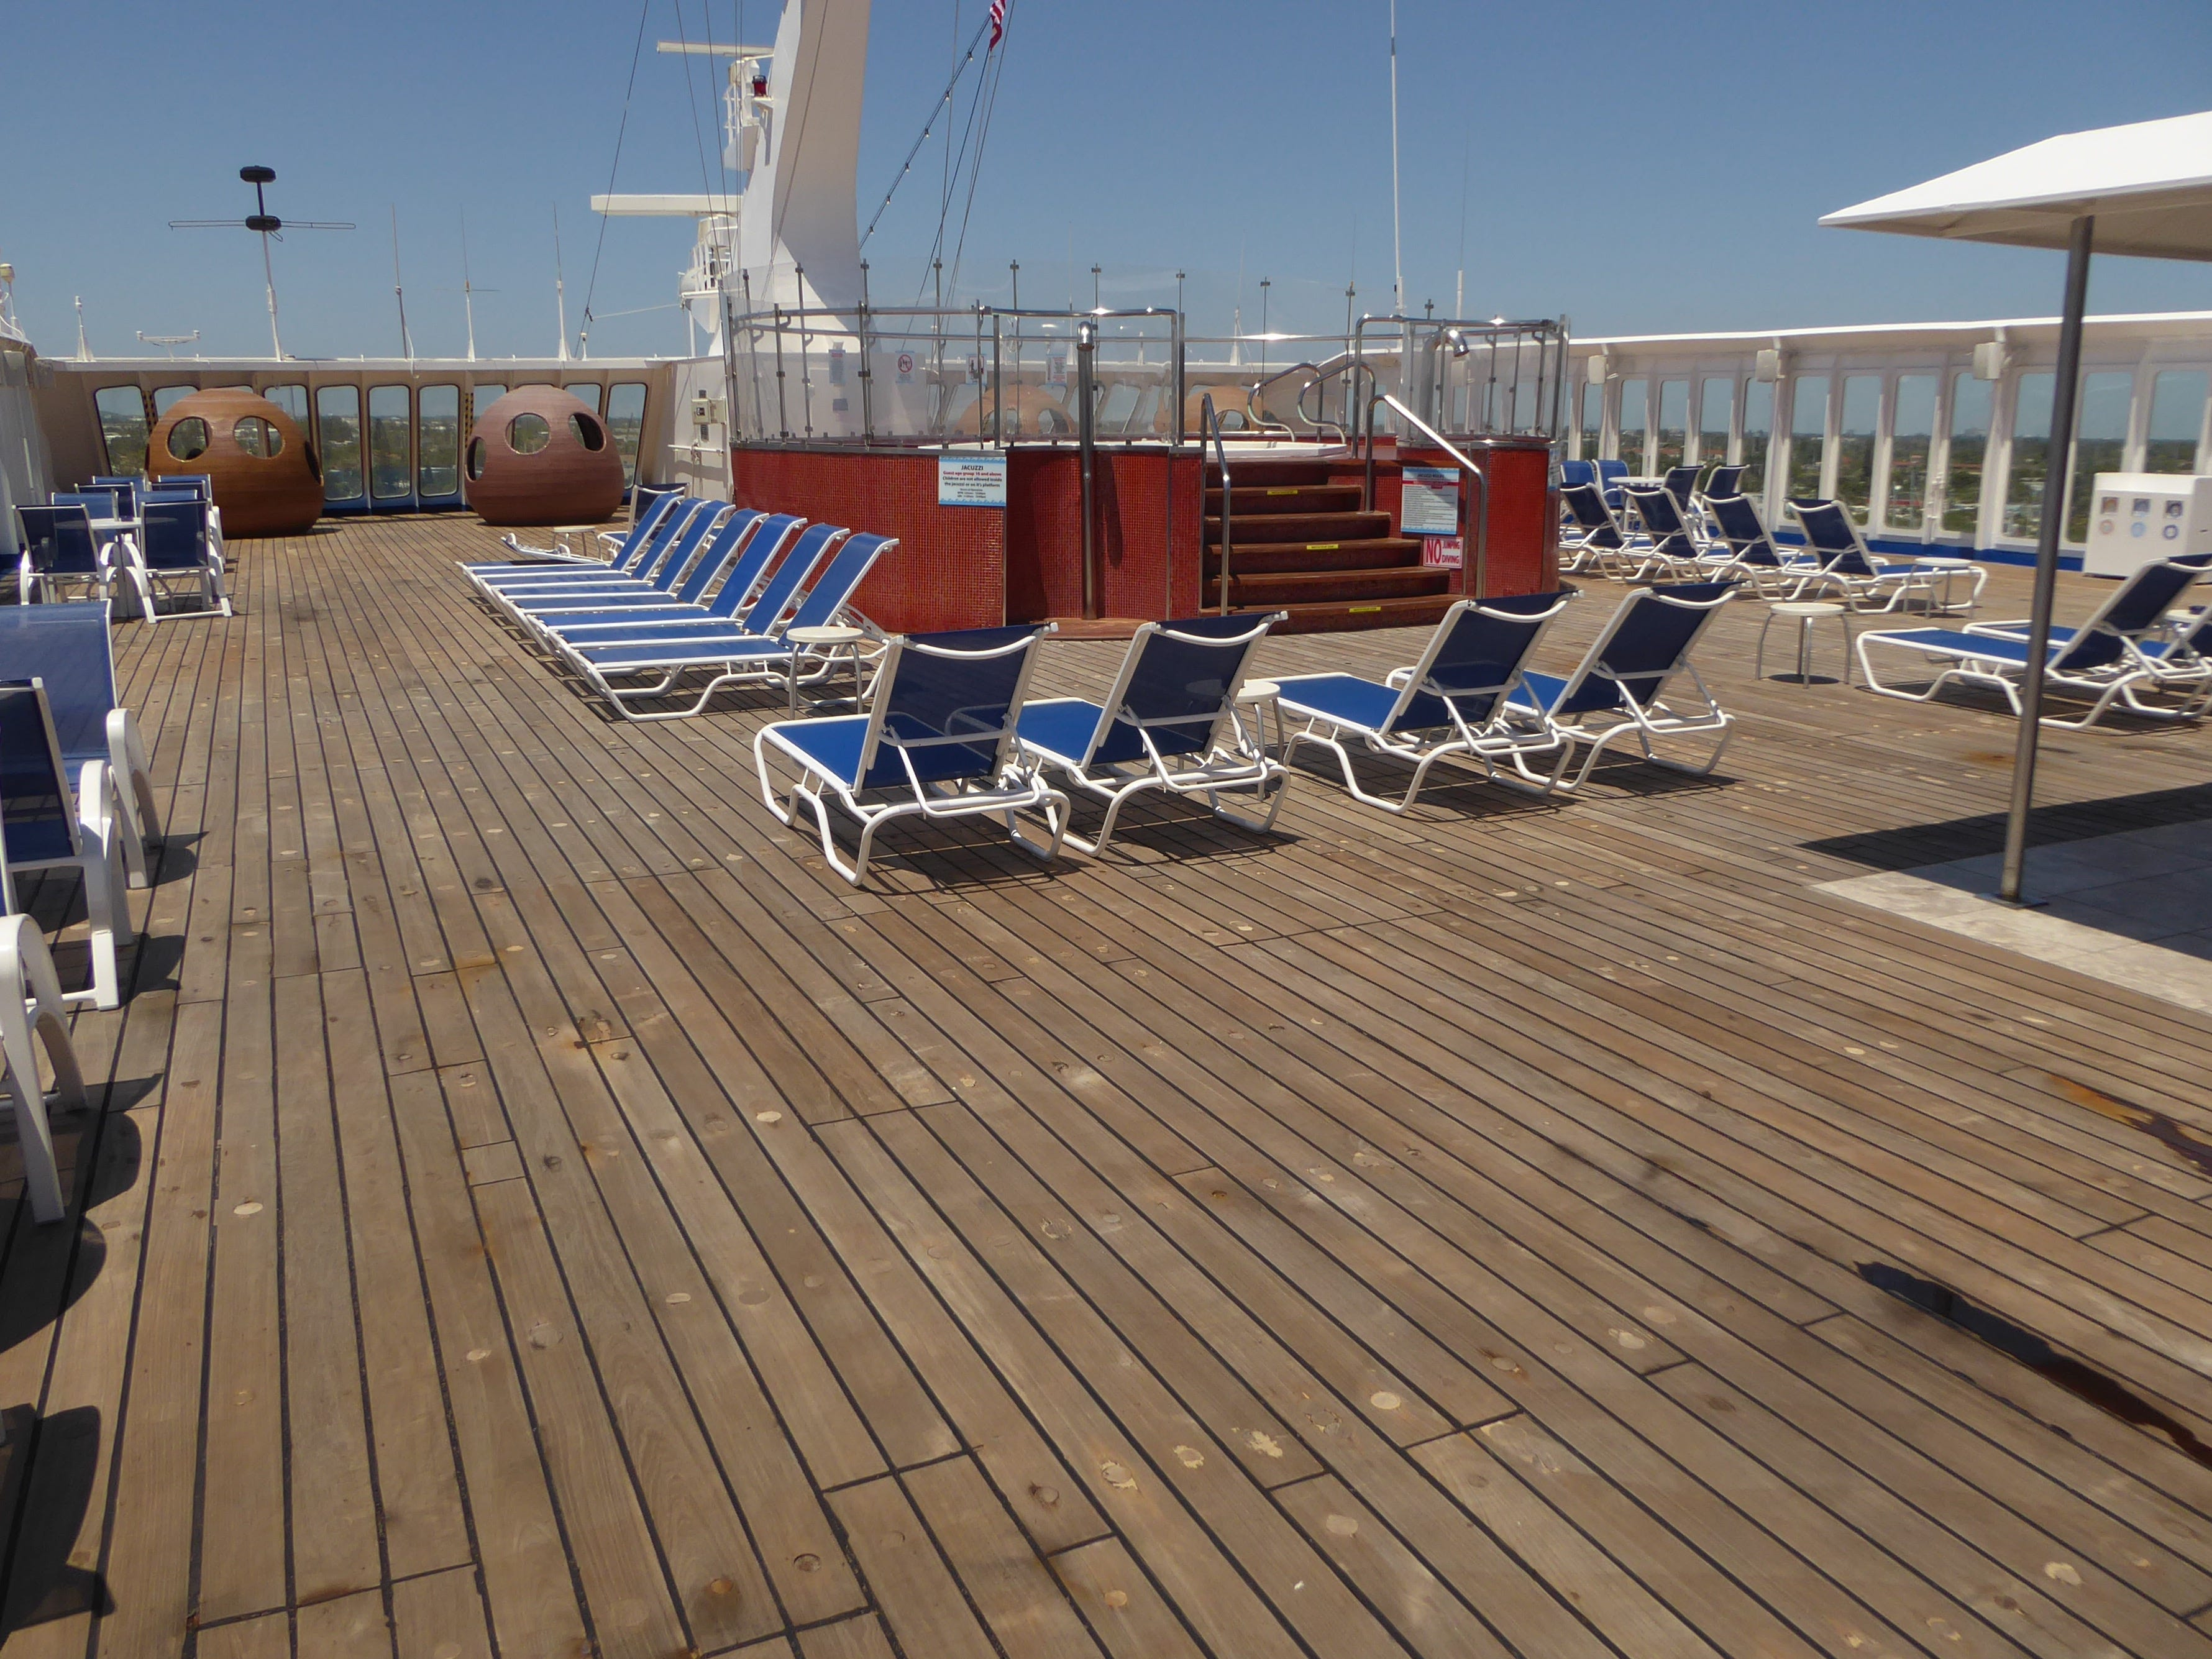 The Grand Celebration has nine guest decks, beginning at the top with Sun Deck (12). Sun Deck is lined in teak and sheltered from high winds on three sides by glass panels.